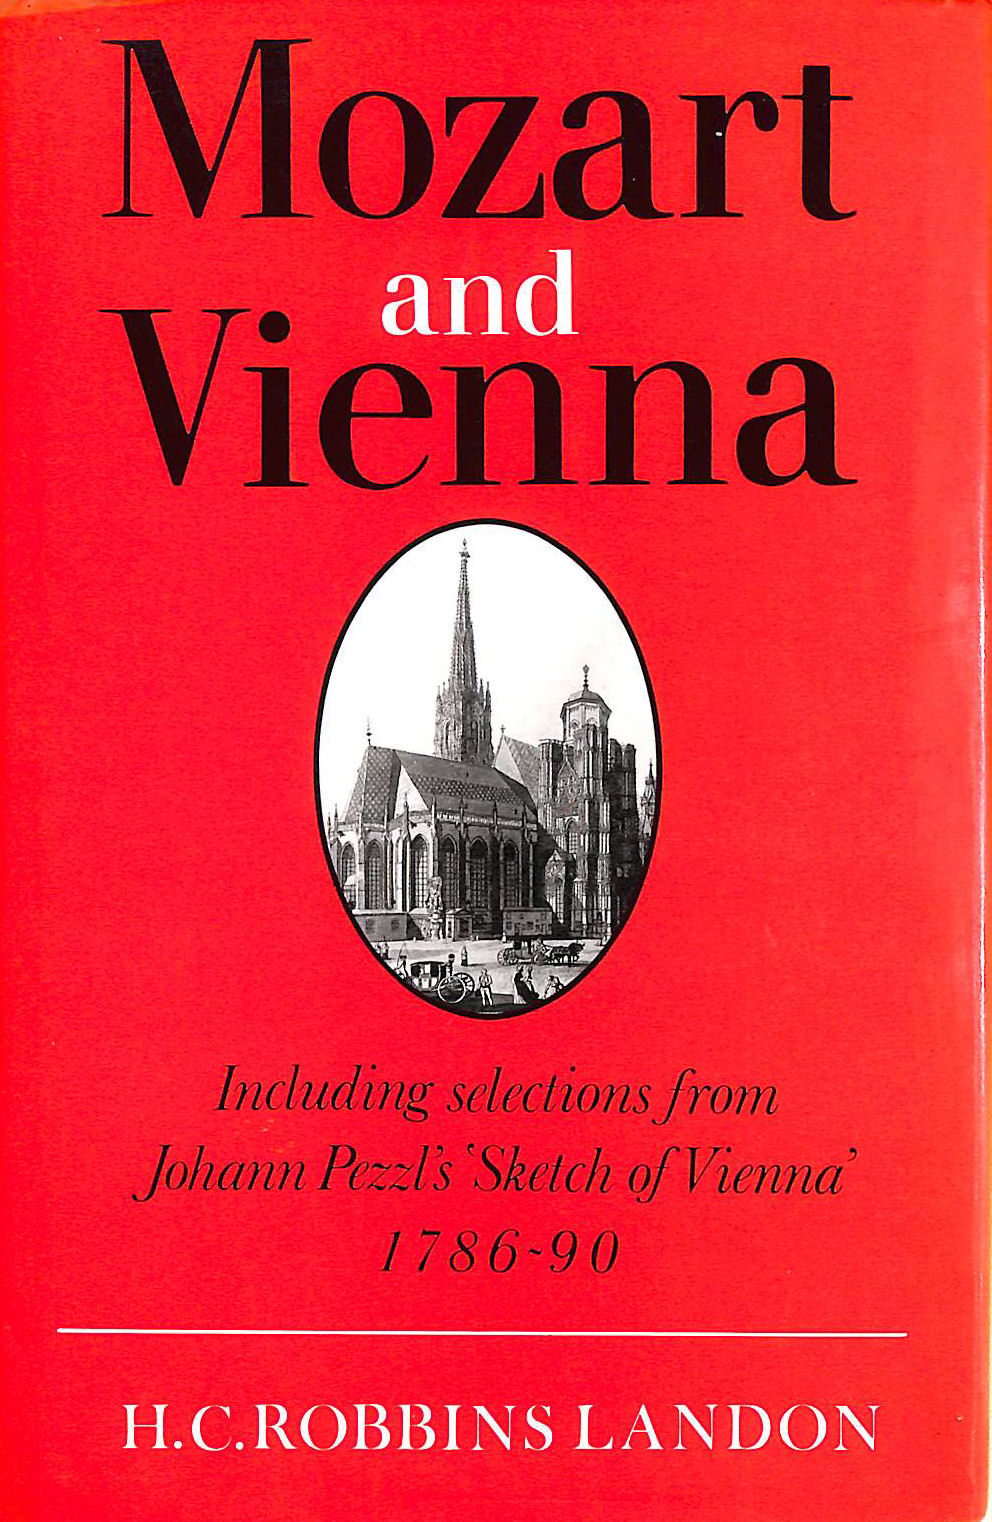 Image for Mozart and Vienna: Including selections from Johann Pezzl's 'Sketch of Vienna' 1786-90